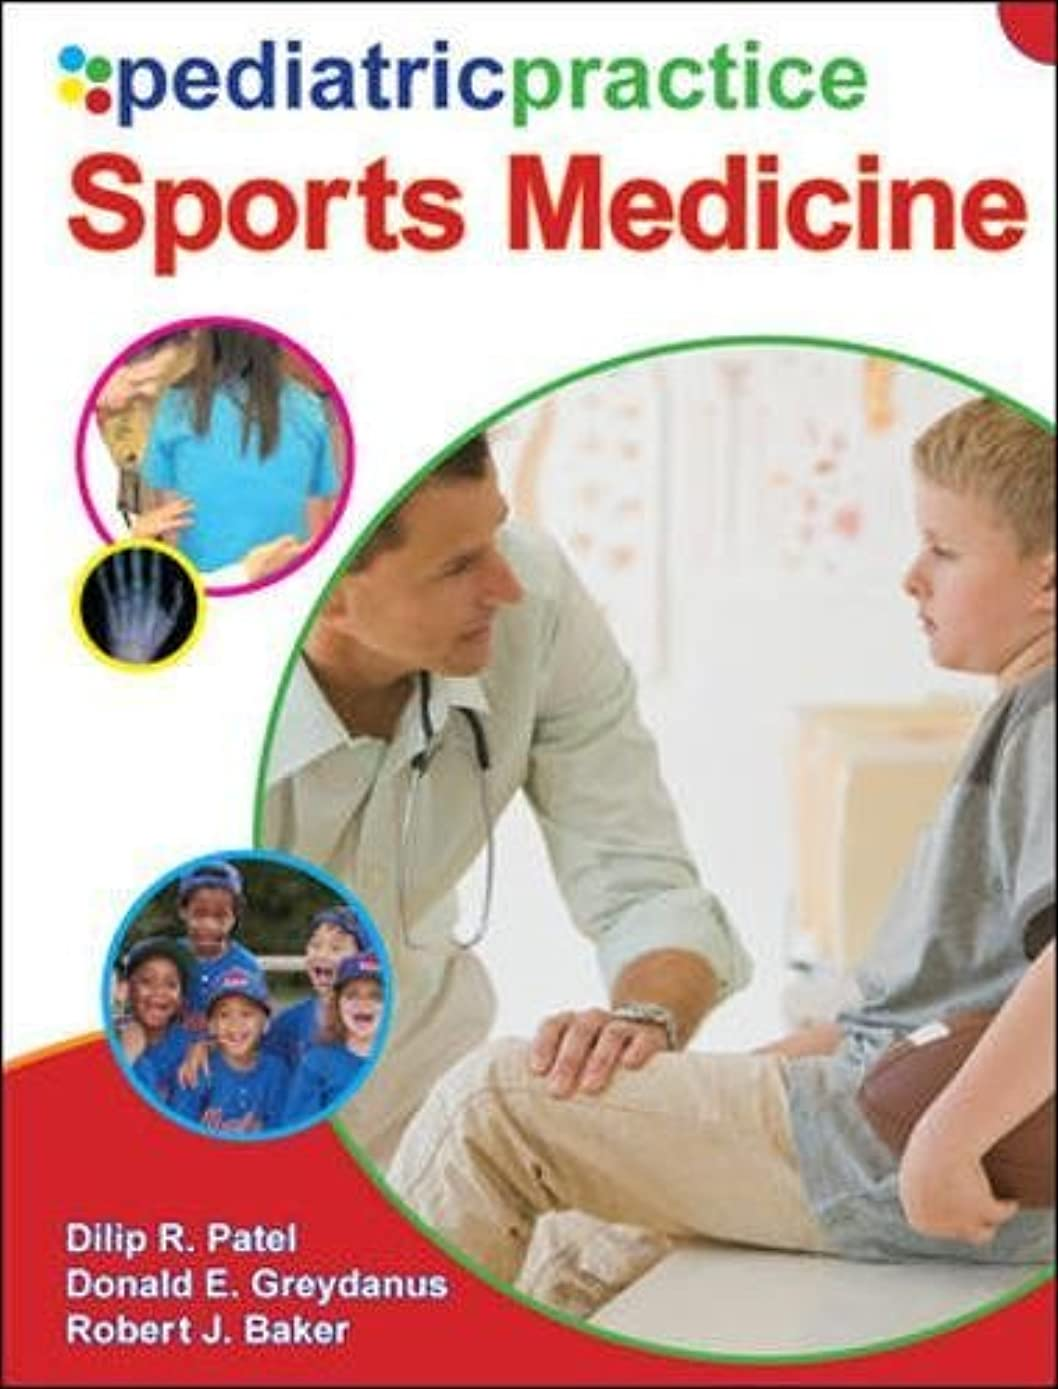 師匠円形晩餐Pediatric Practice Sports Medicine